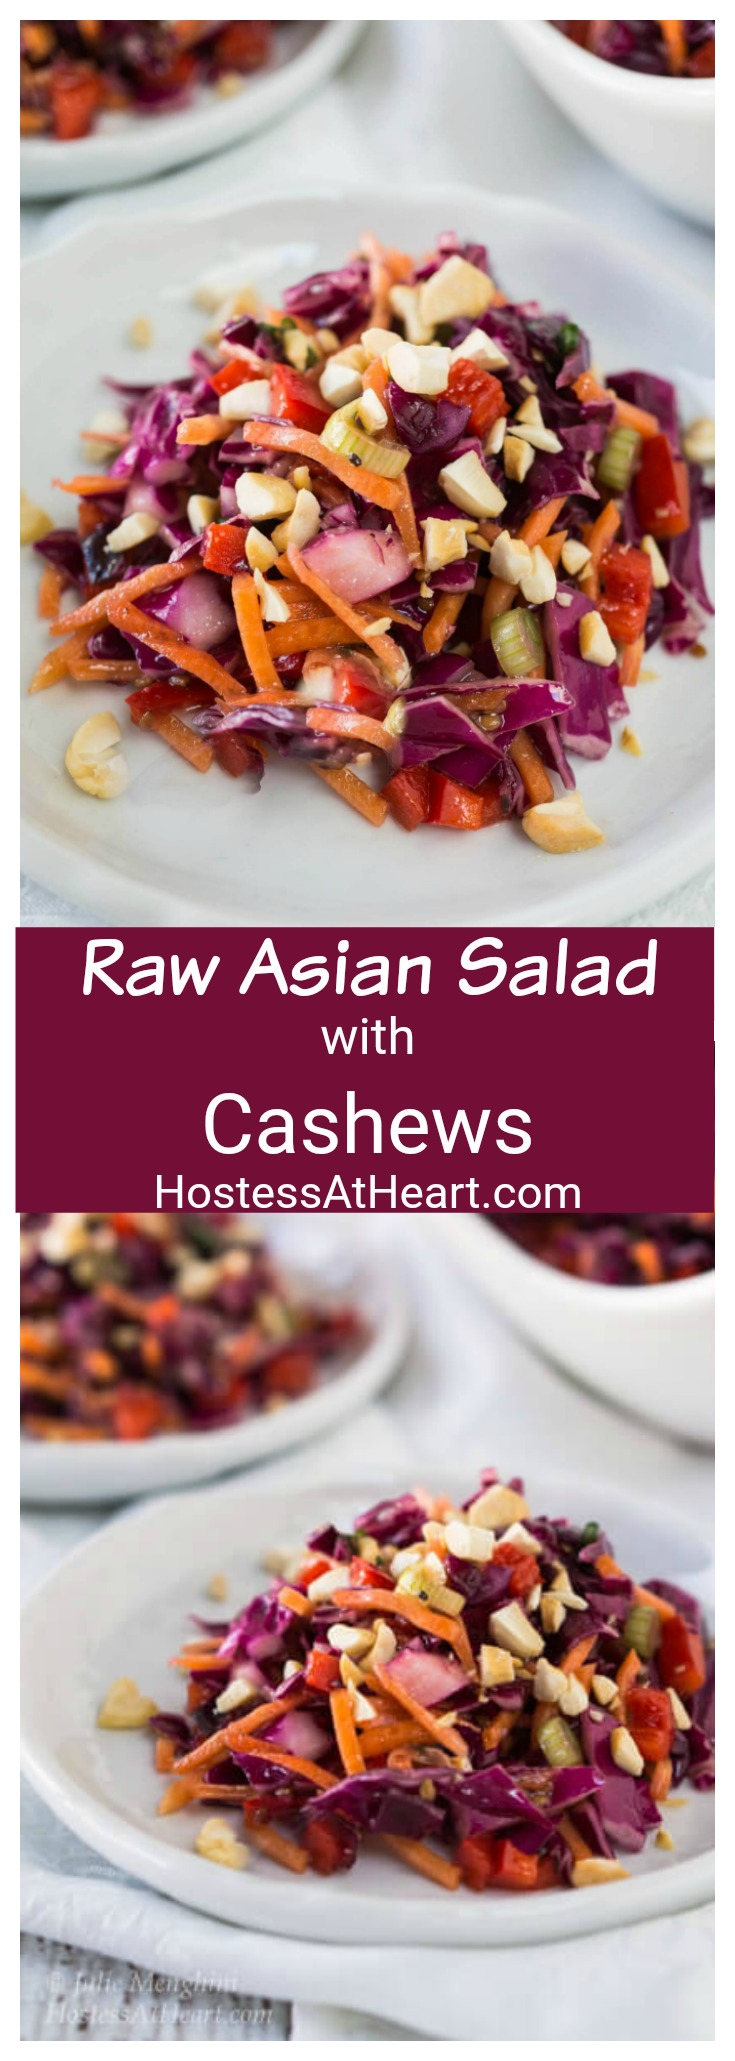 The Asian Cabbage Salad makes for a show stopper dish. Crunchy veggies and cashew nuts are tossed in a ginger sesame vinaigrette for one delicious salad. #easysaladrecipe, #freshsaladrecipe #cabbage